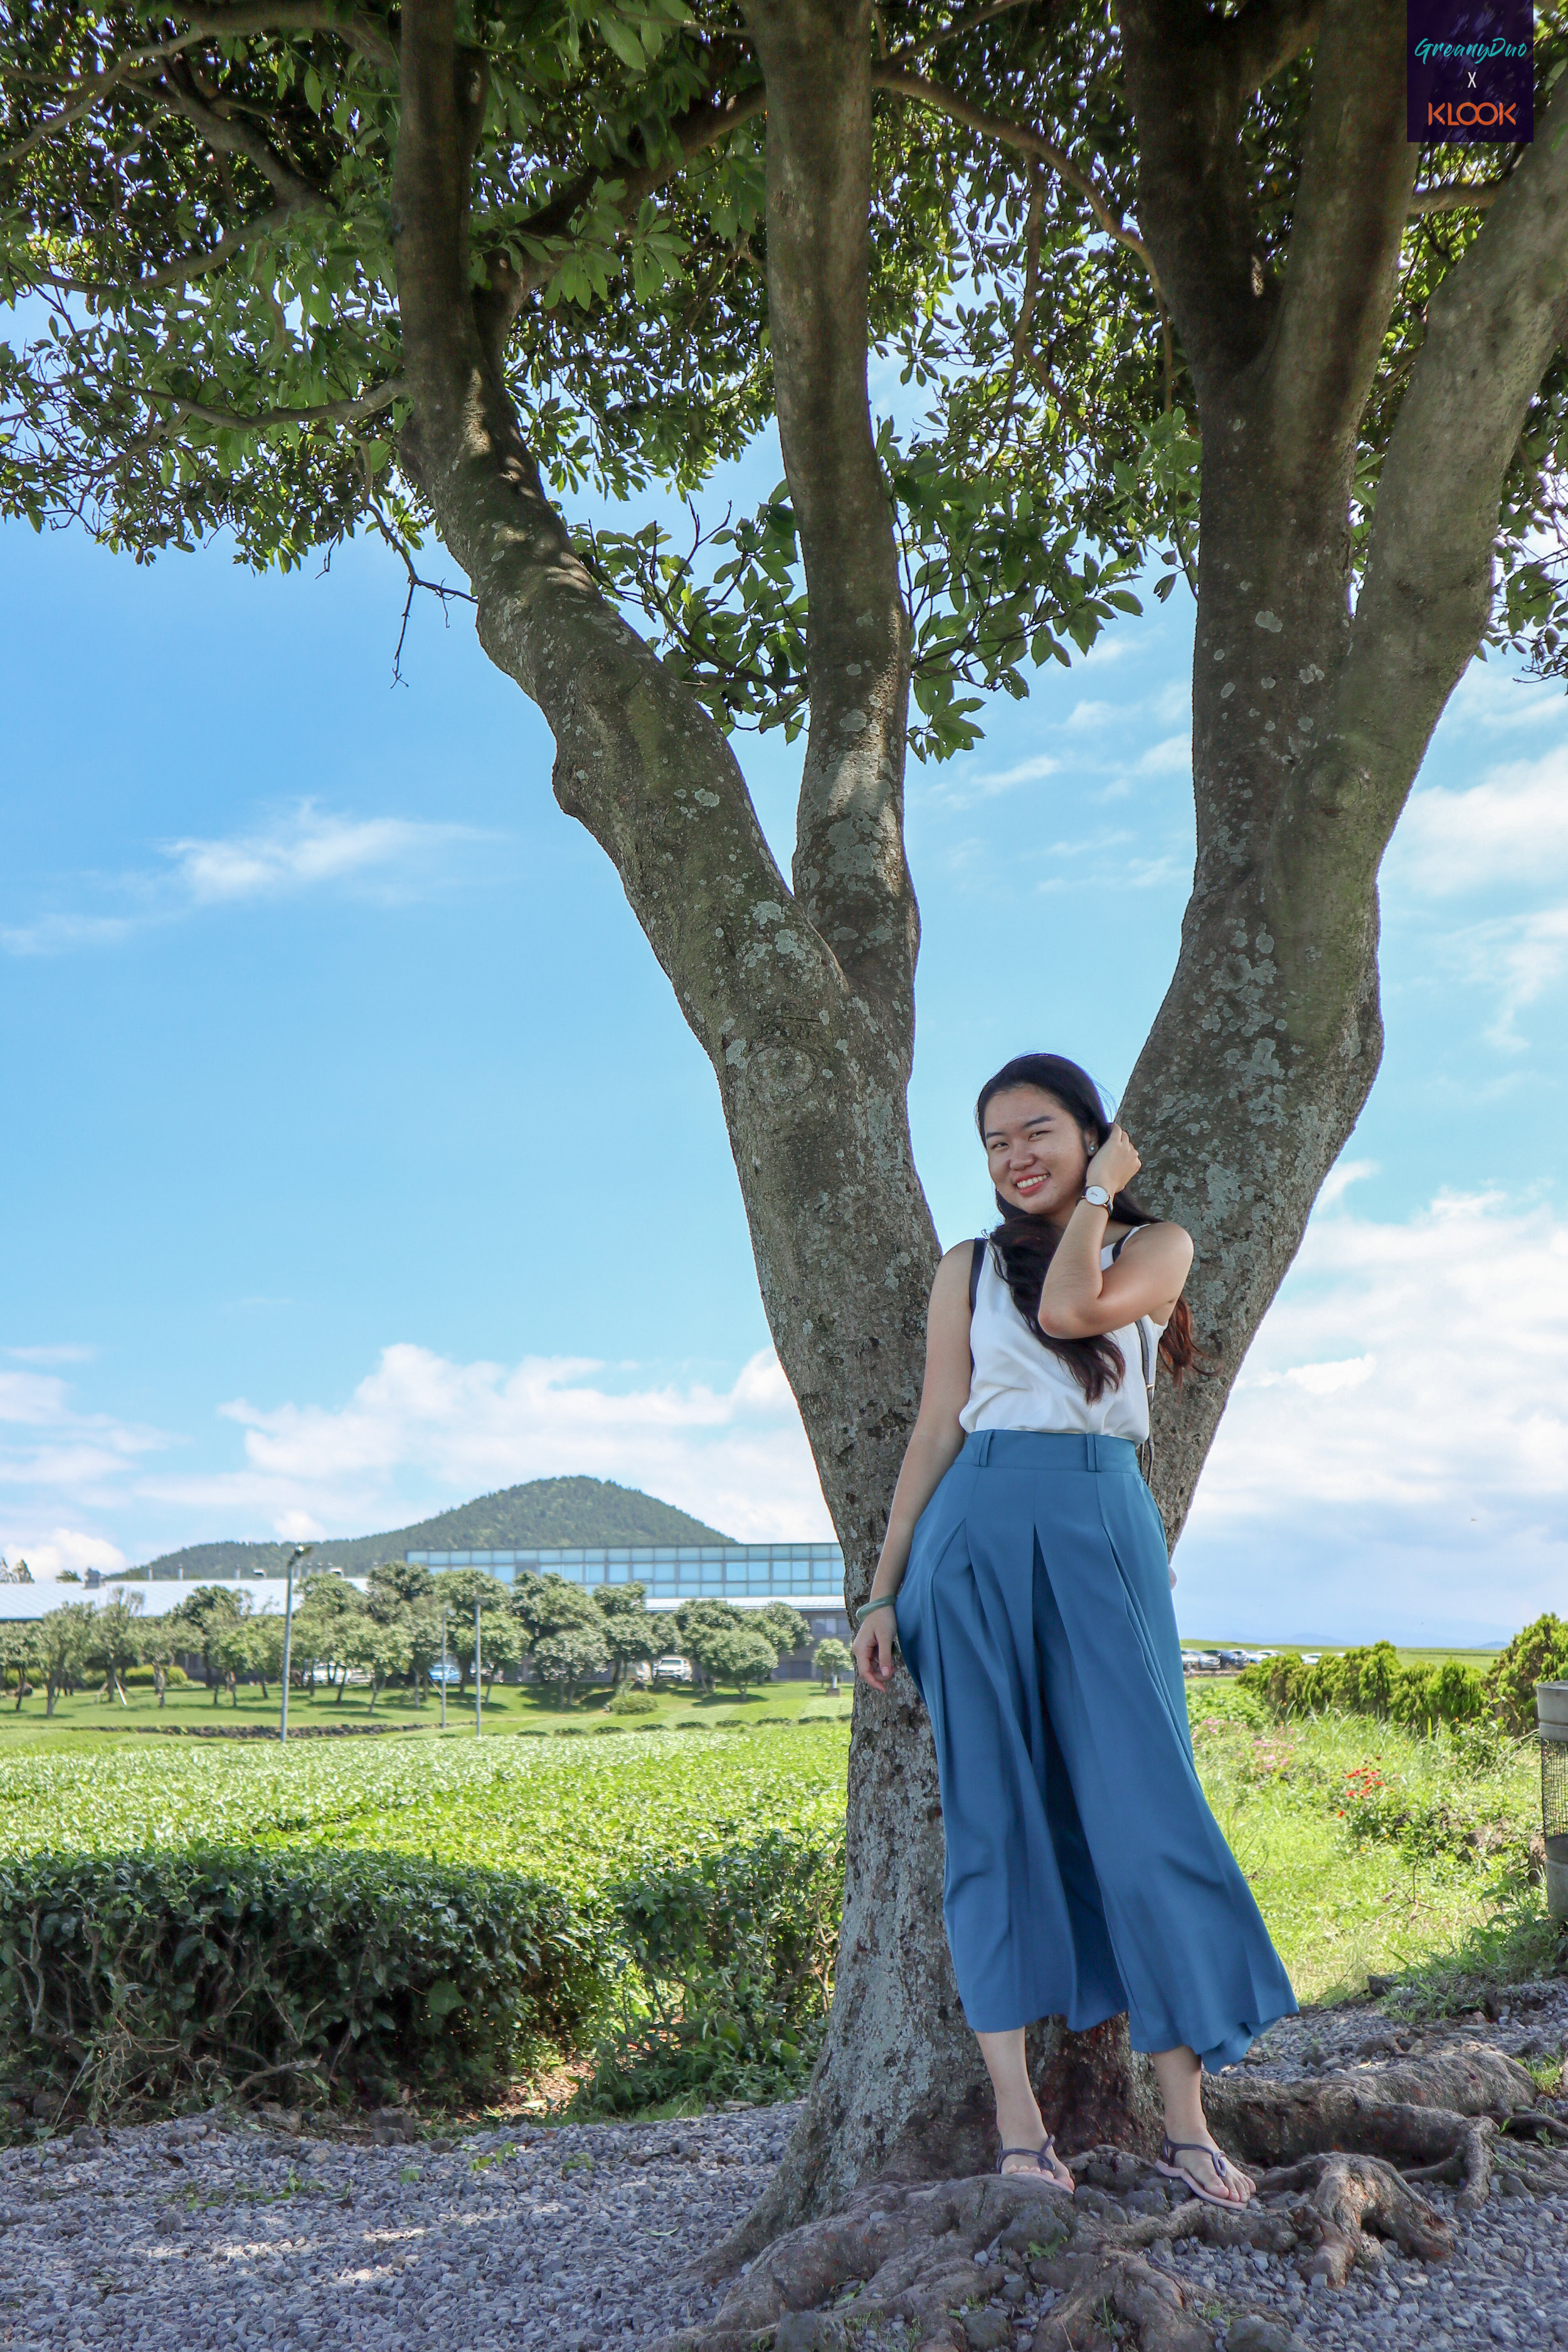 tina taking photo with the big tree in the middle of ไร่ชาเขียว O'Sulloc เกาะเชจู